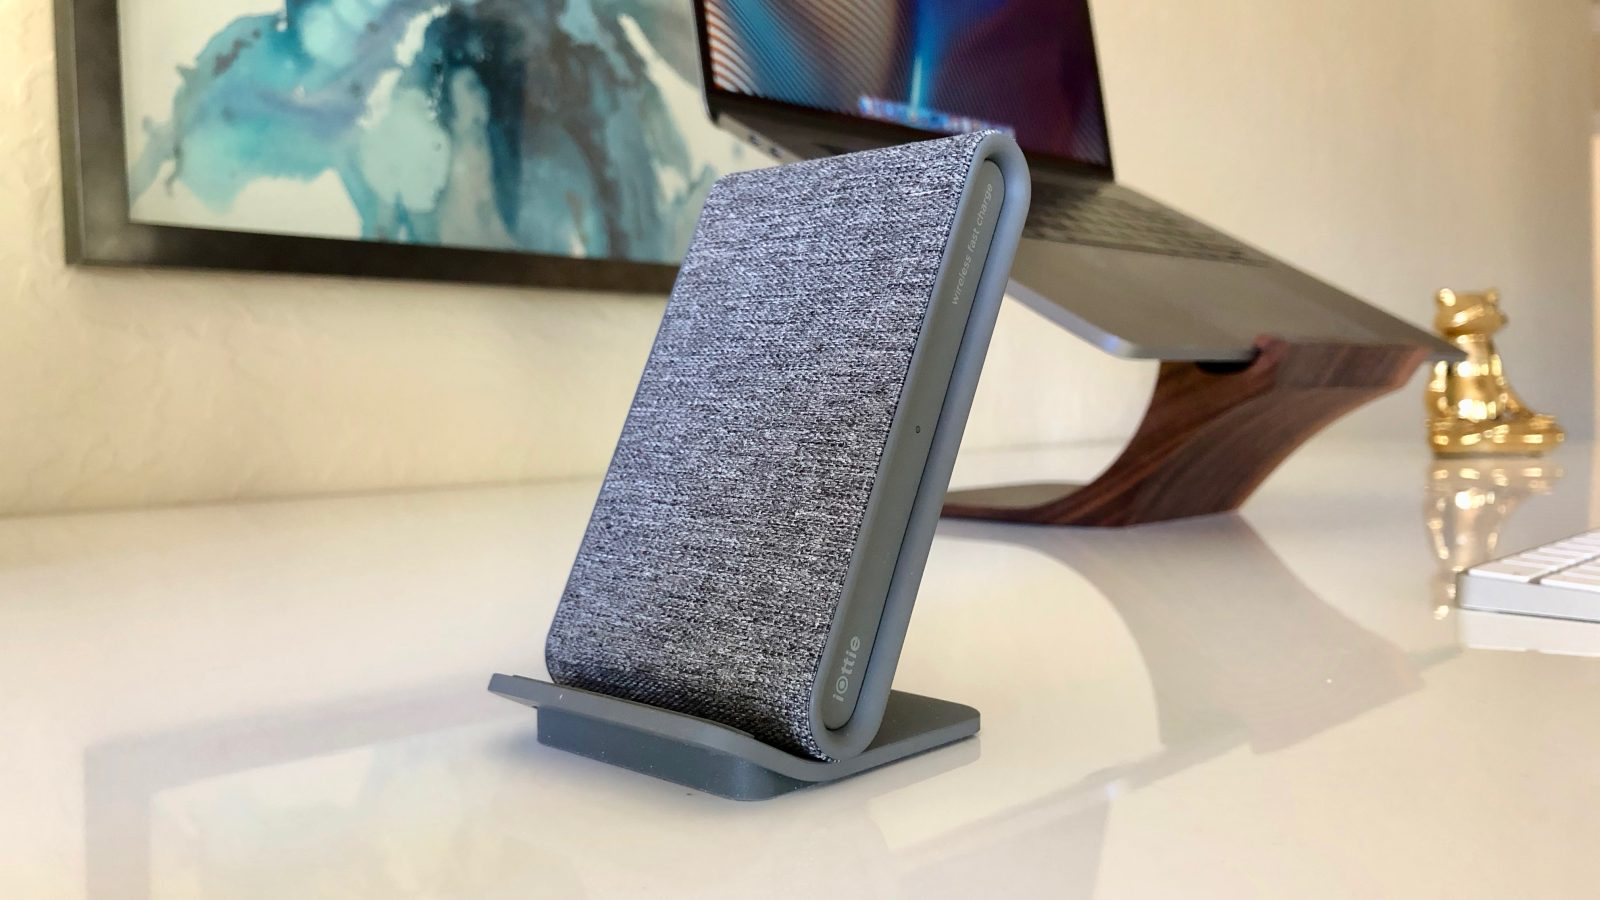 Review: iOttie iON Wireless Stand Charger offers good looks, upright iPhone charging options